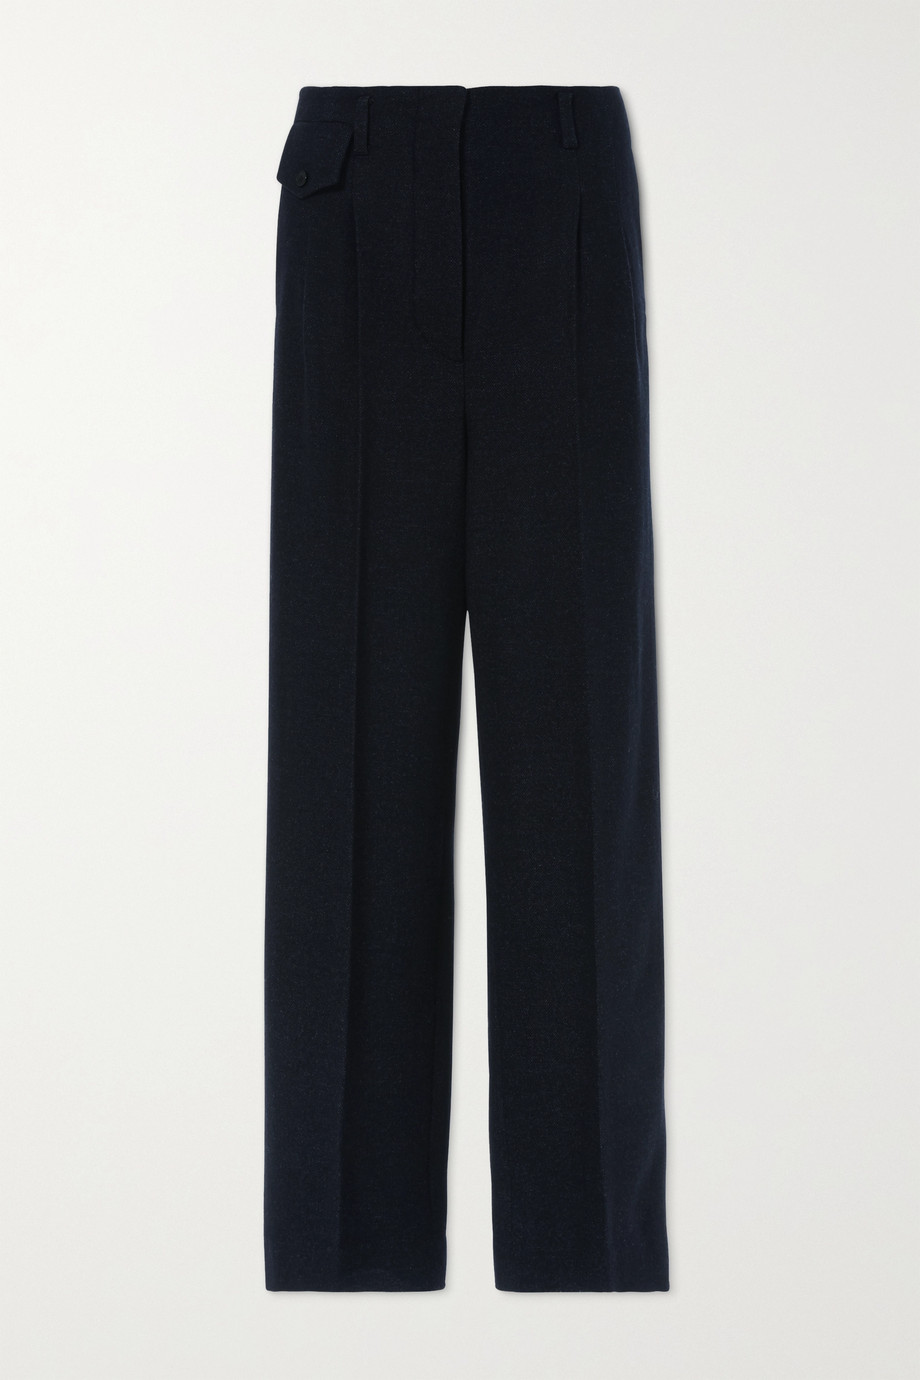 LVIR Pleated herringbone wool-blend wide-leg pants